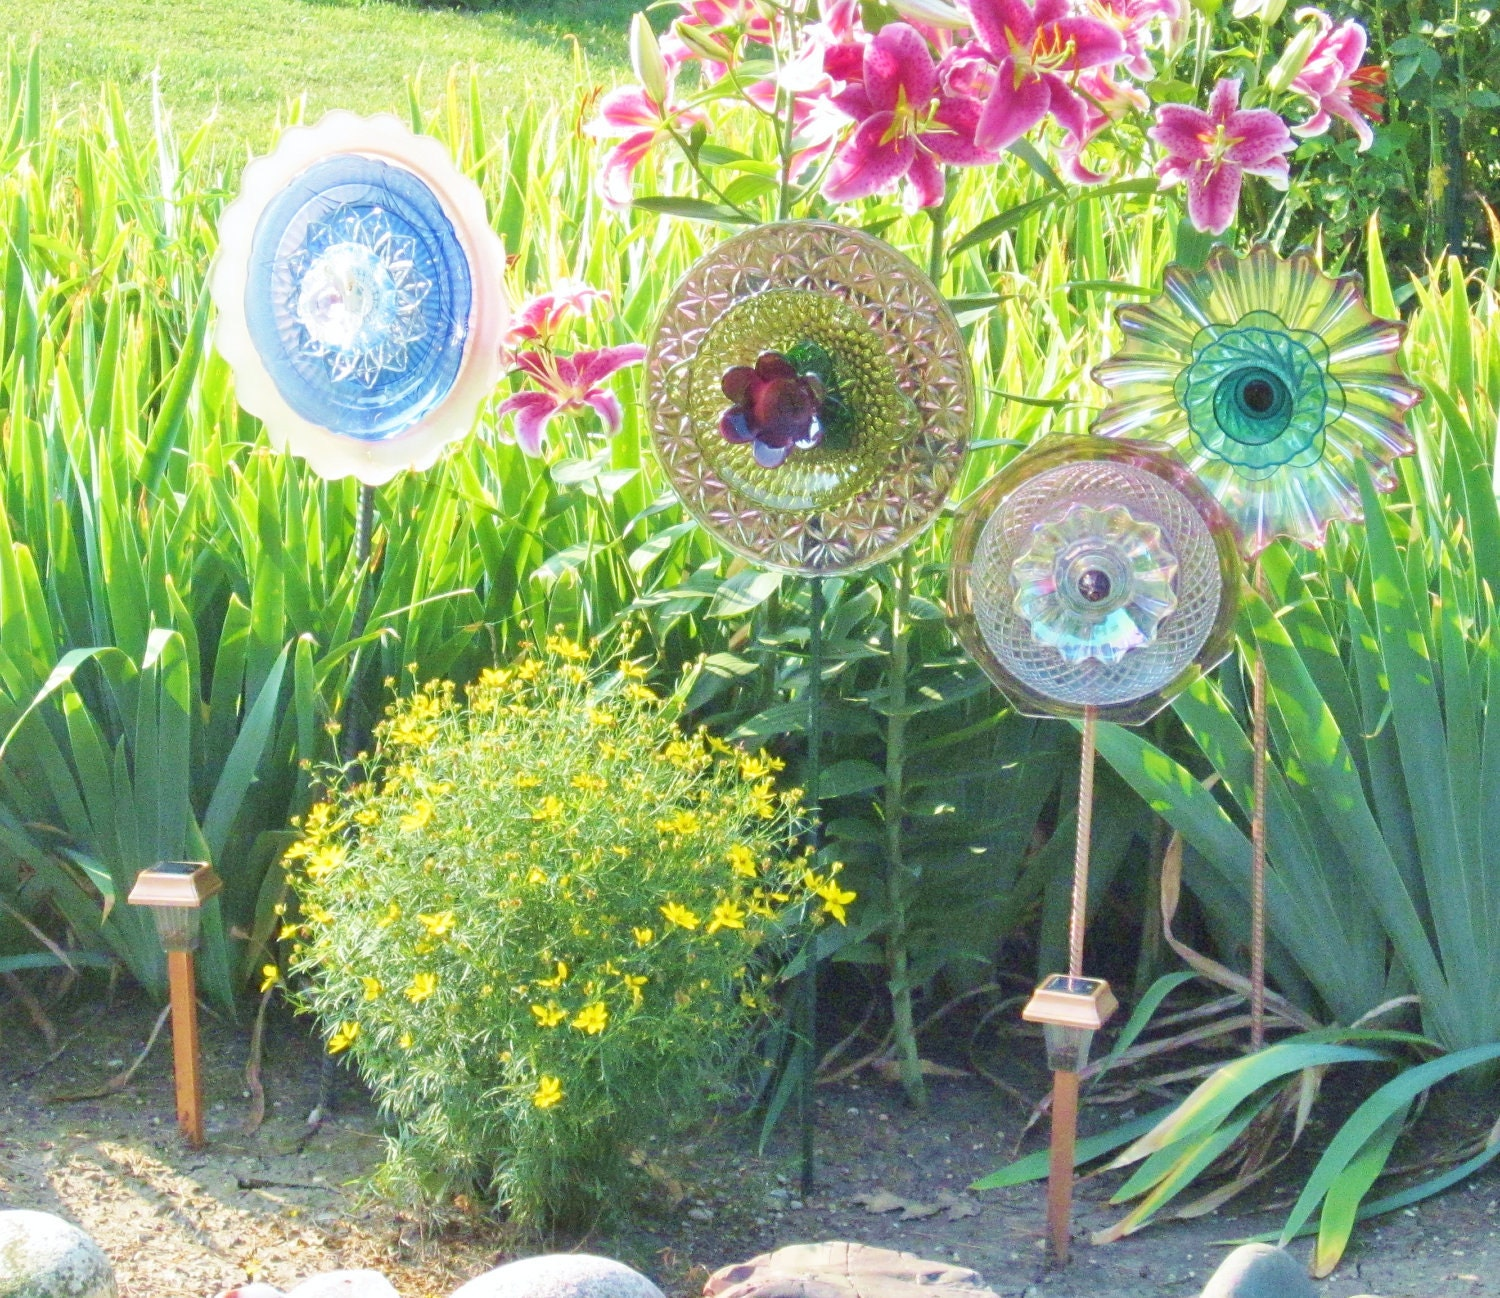 Garden flower outdoor decor recycled glass plate by jarmfarm for Recycled decoration